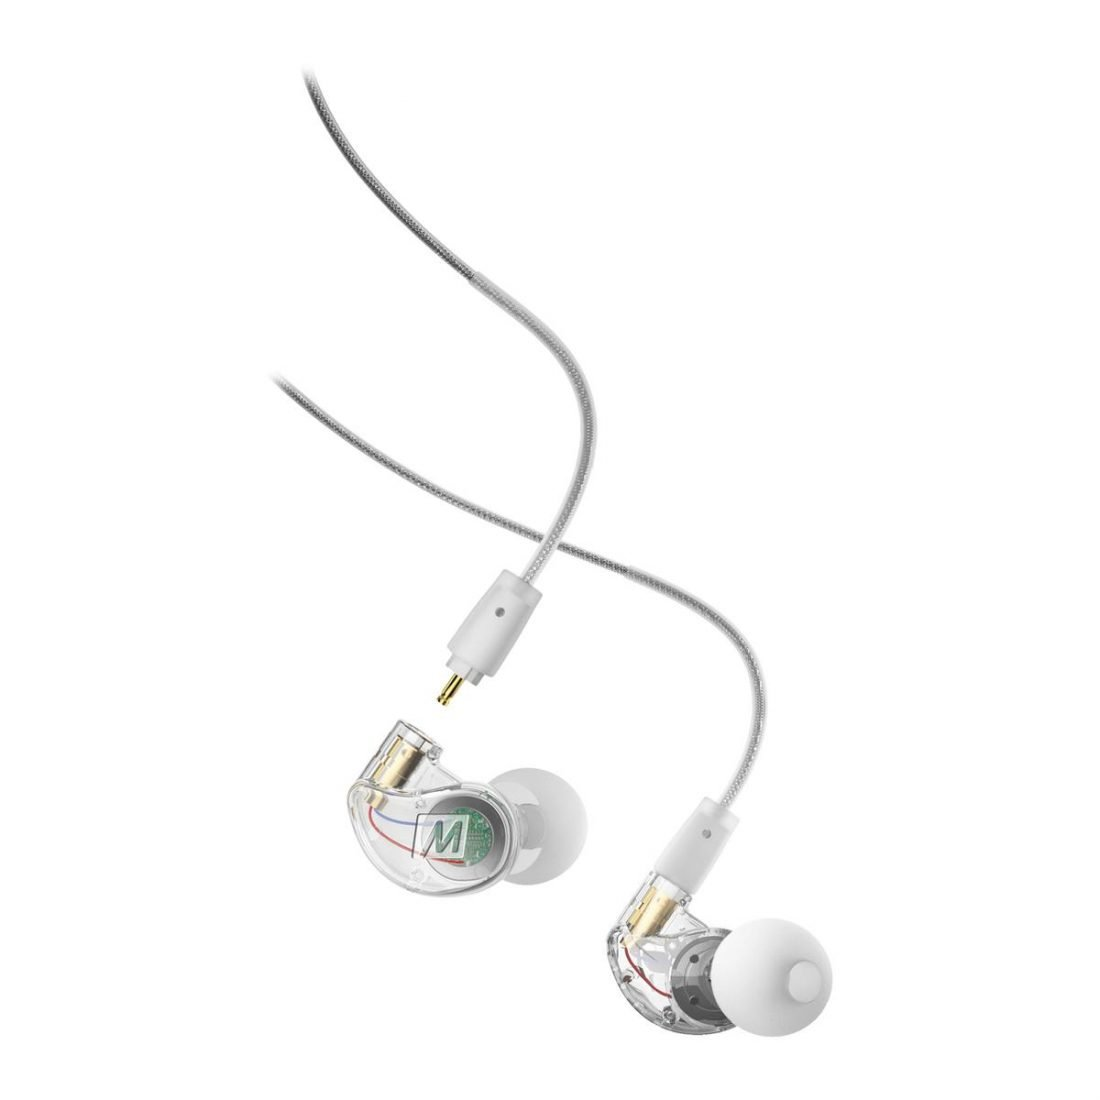 Mee Audio M6 Pro 2nd Generation wired earphones (From: Mee Audio)